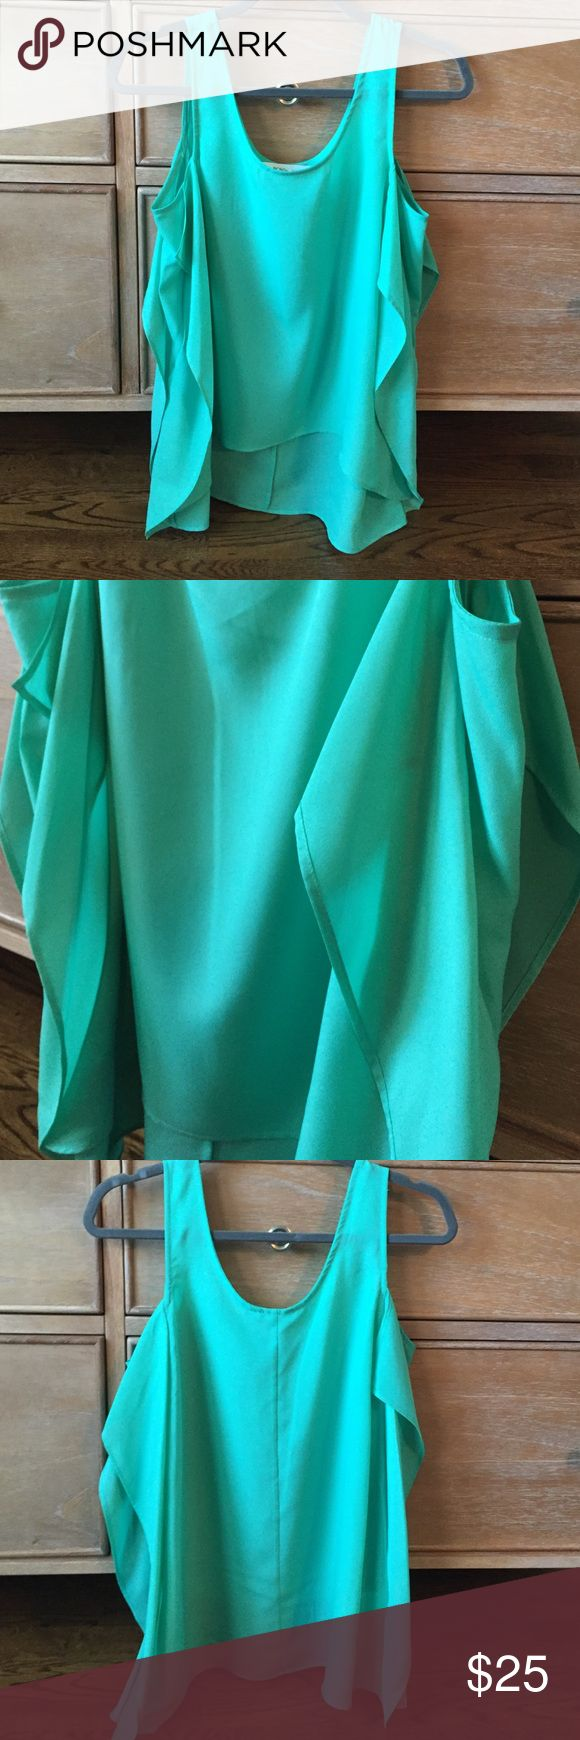 BCBG Top Barely ever worn in great condition BCBG mint green silk top. BCBGeneration Tops Blouses